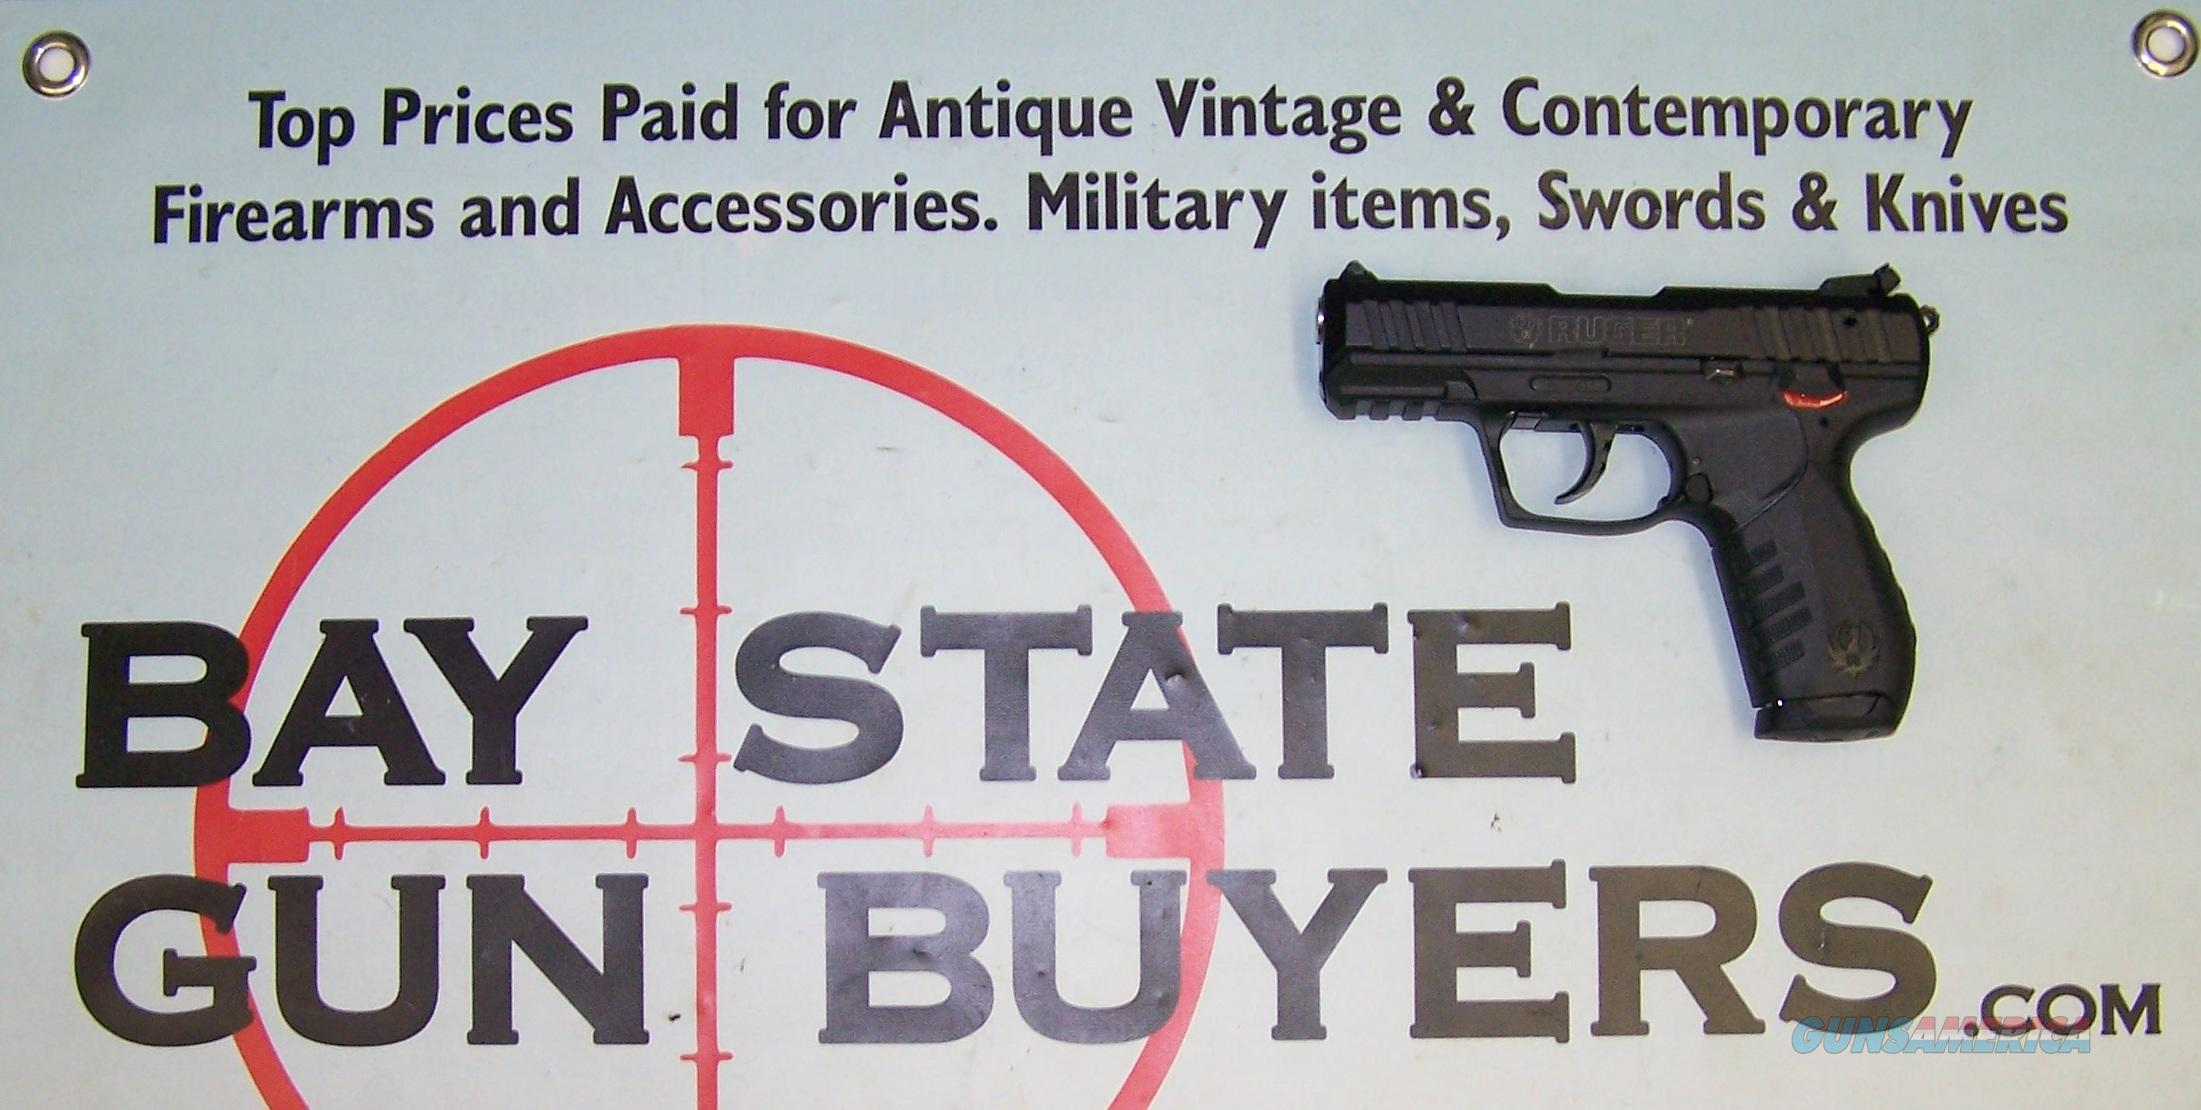 Ruger SR 22 PB .22 LR in ORIGINAL BOX w manual EXTRA MAGAZINE  Guns > Pistols > Ruger Semi-Auto Pistols > SR9 & SR40